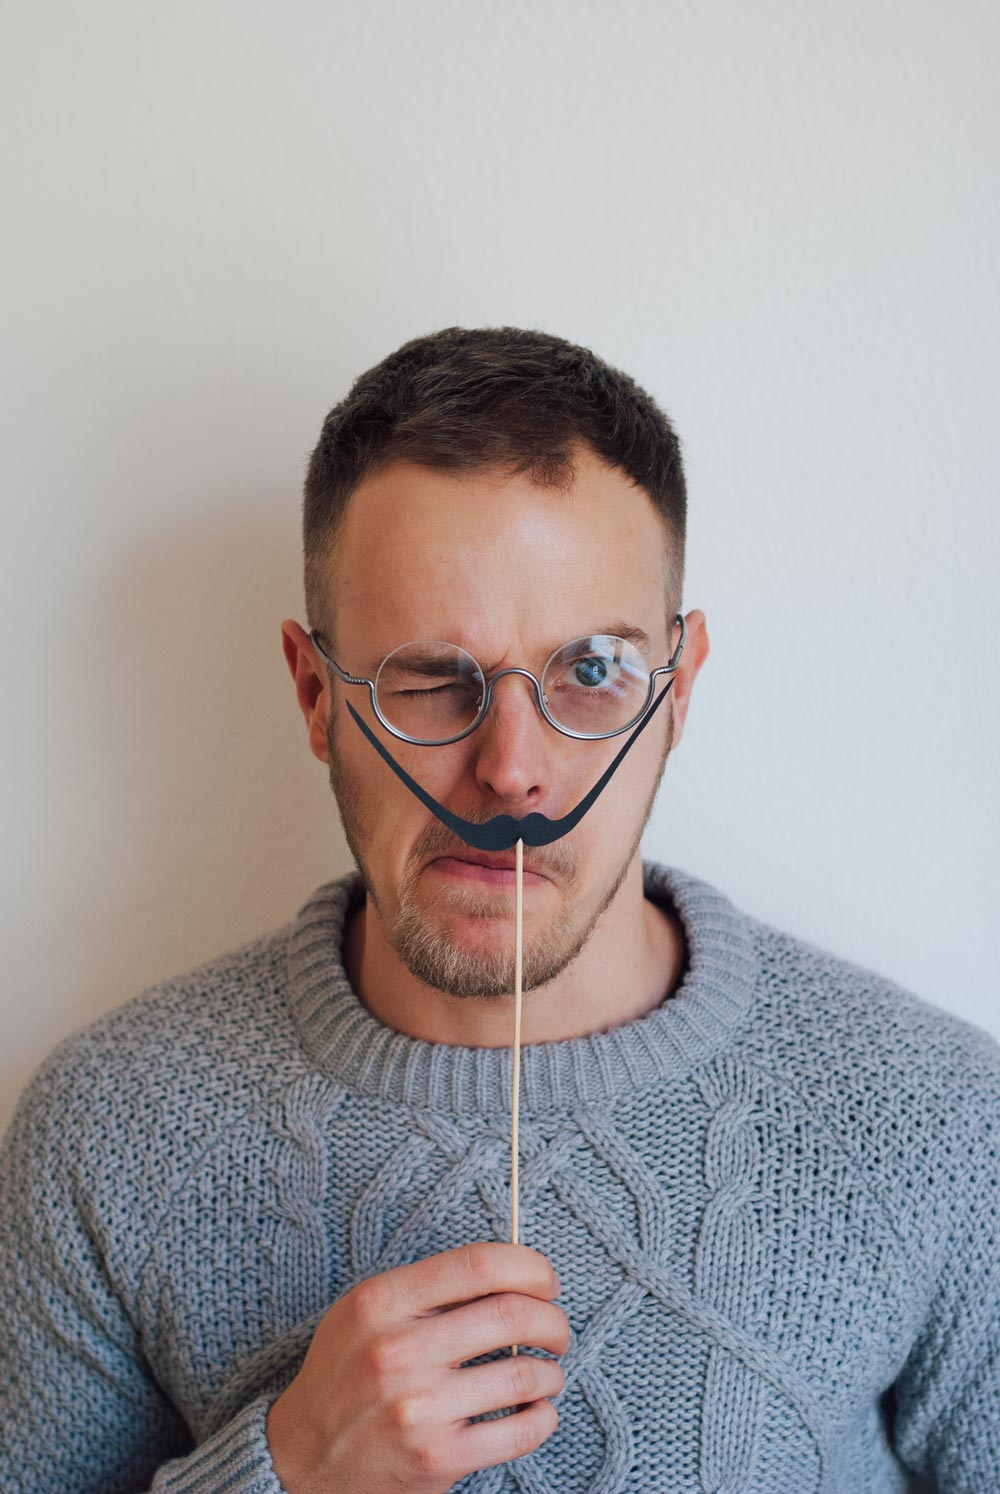 d1680bcc58 Best 5 Movember styling ideas  Glasses x Staches